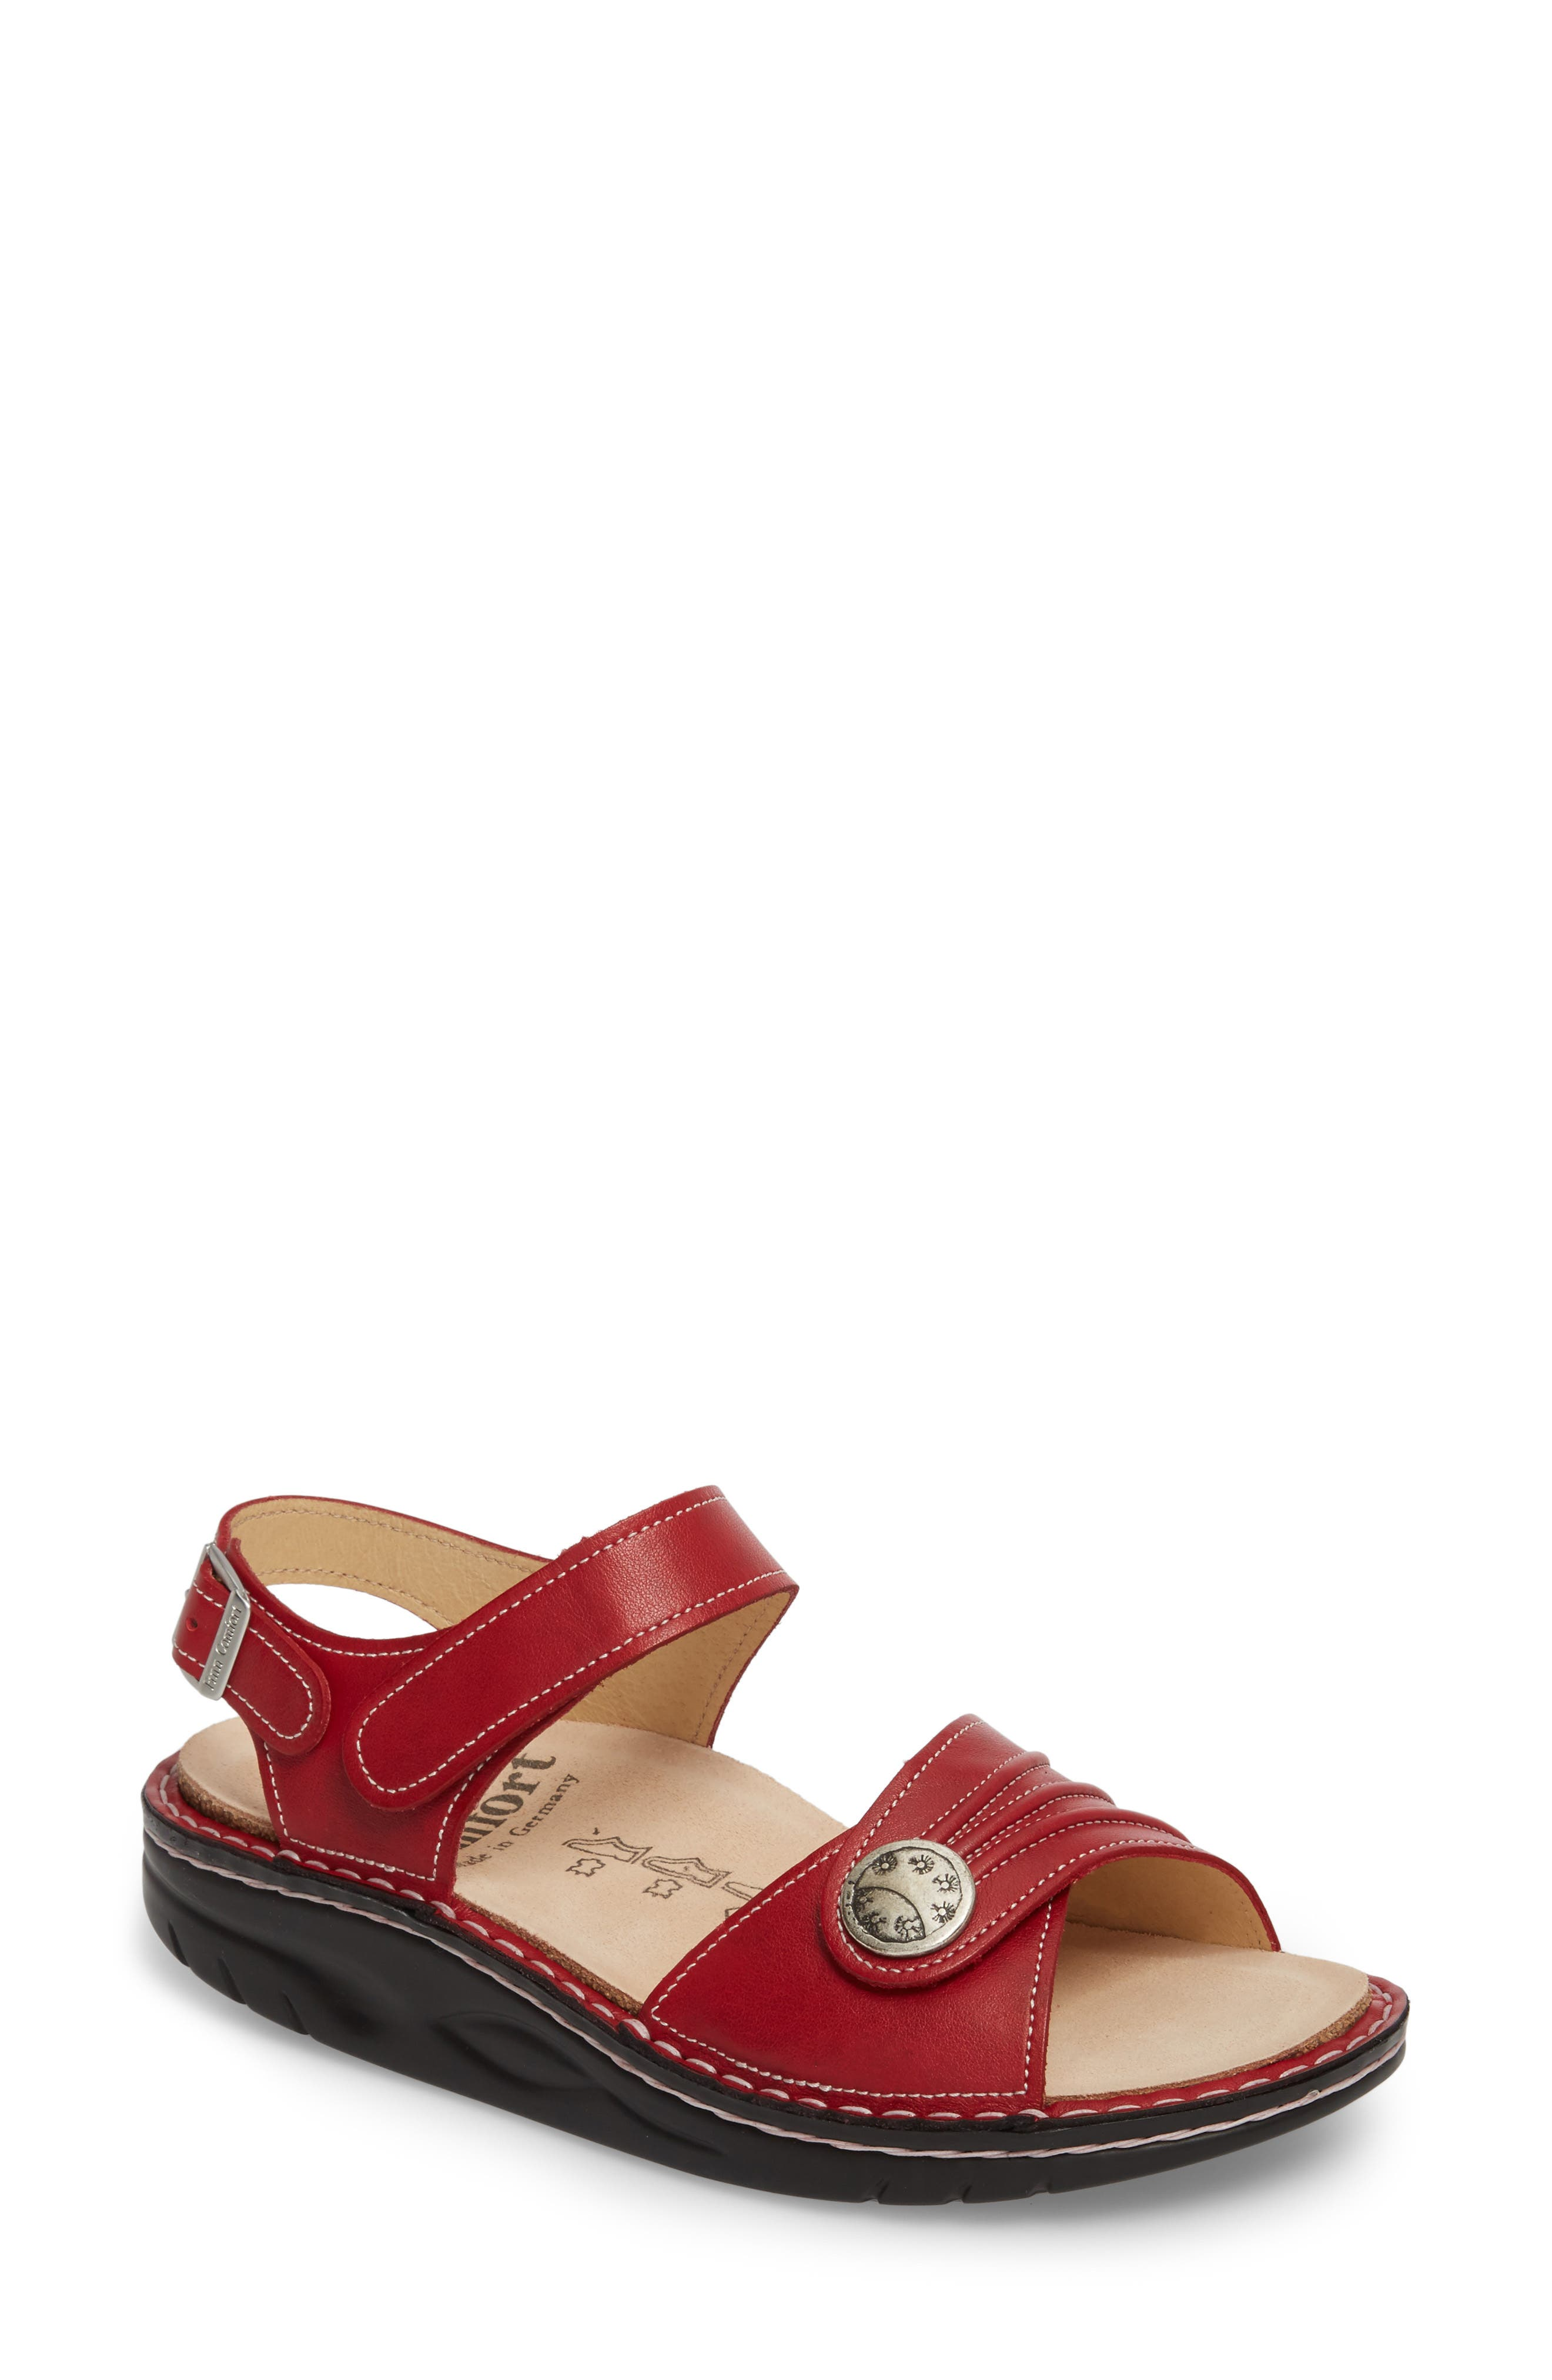 FINNAMIC by Finn Comfort 'Sausalito' Sandal,                             Main thumbnail 1, color,                             RED LEATHER